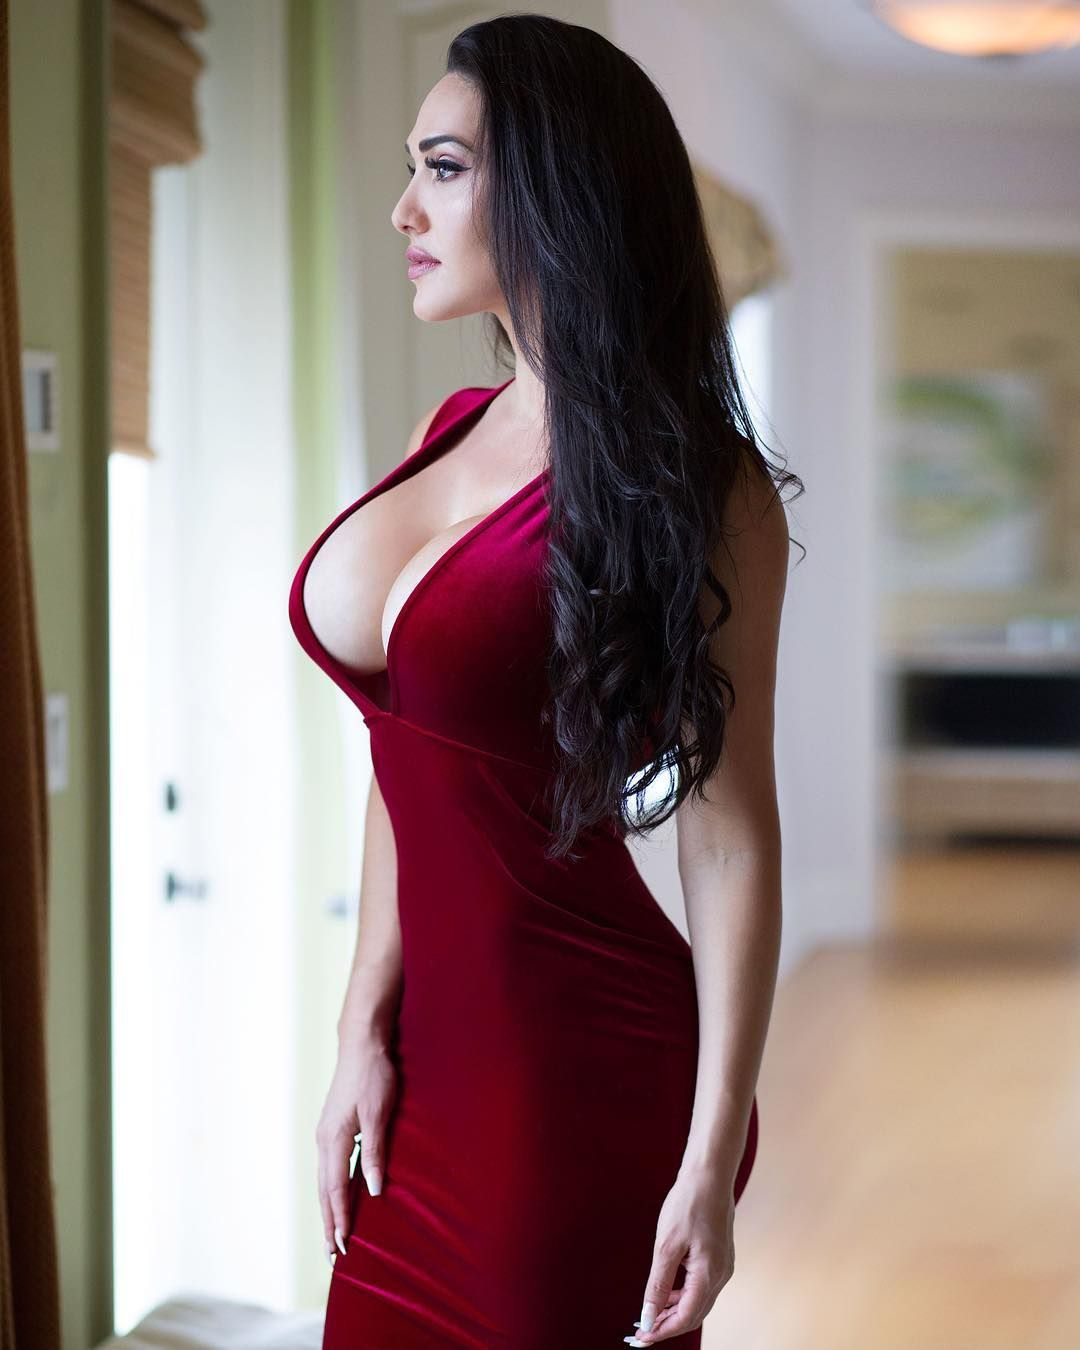 Love play, very sexy Dessous online consider myself easy-going person